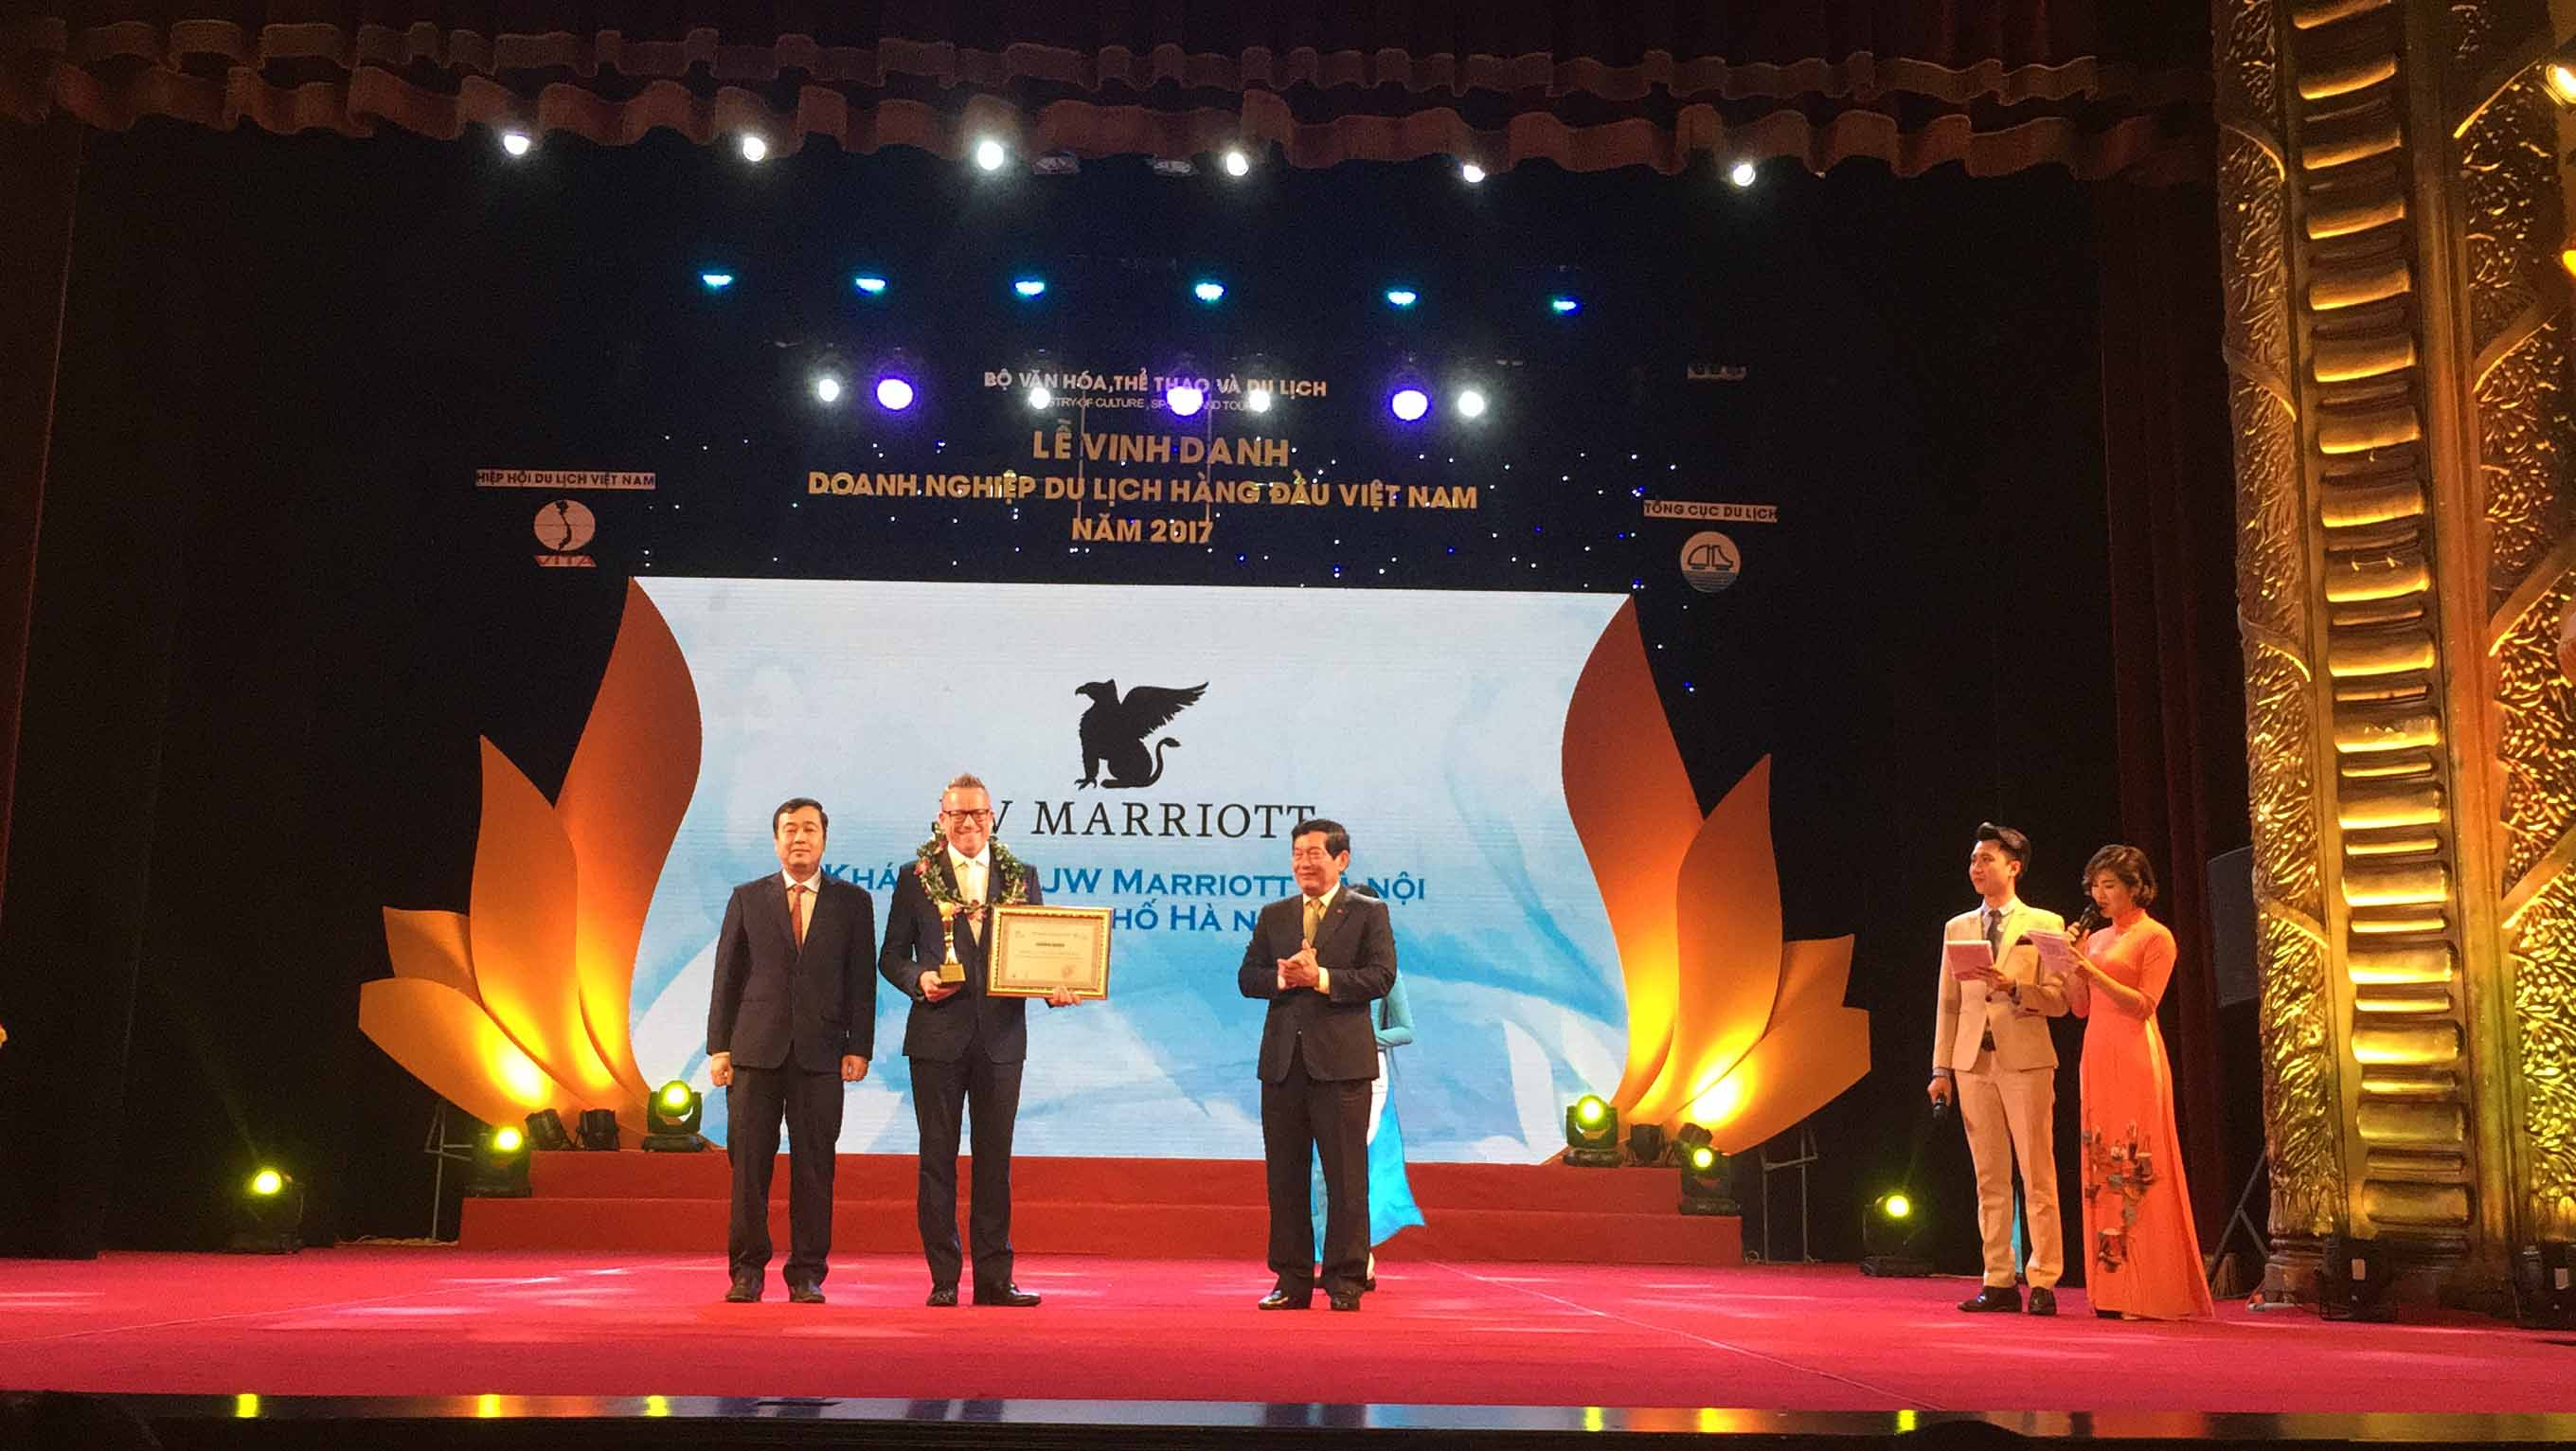 paul-dunn-u-director-of-sales-and-marketing-honored-to-receive-the-1st-rank-in-top-ten-5-star-hotels-in-vietnam-award